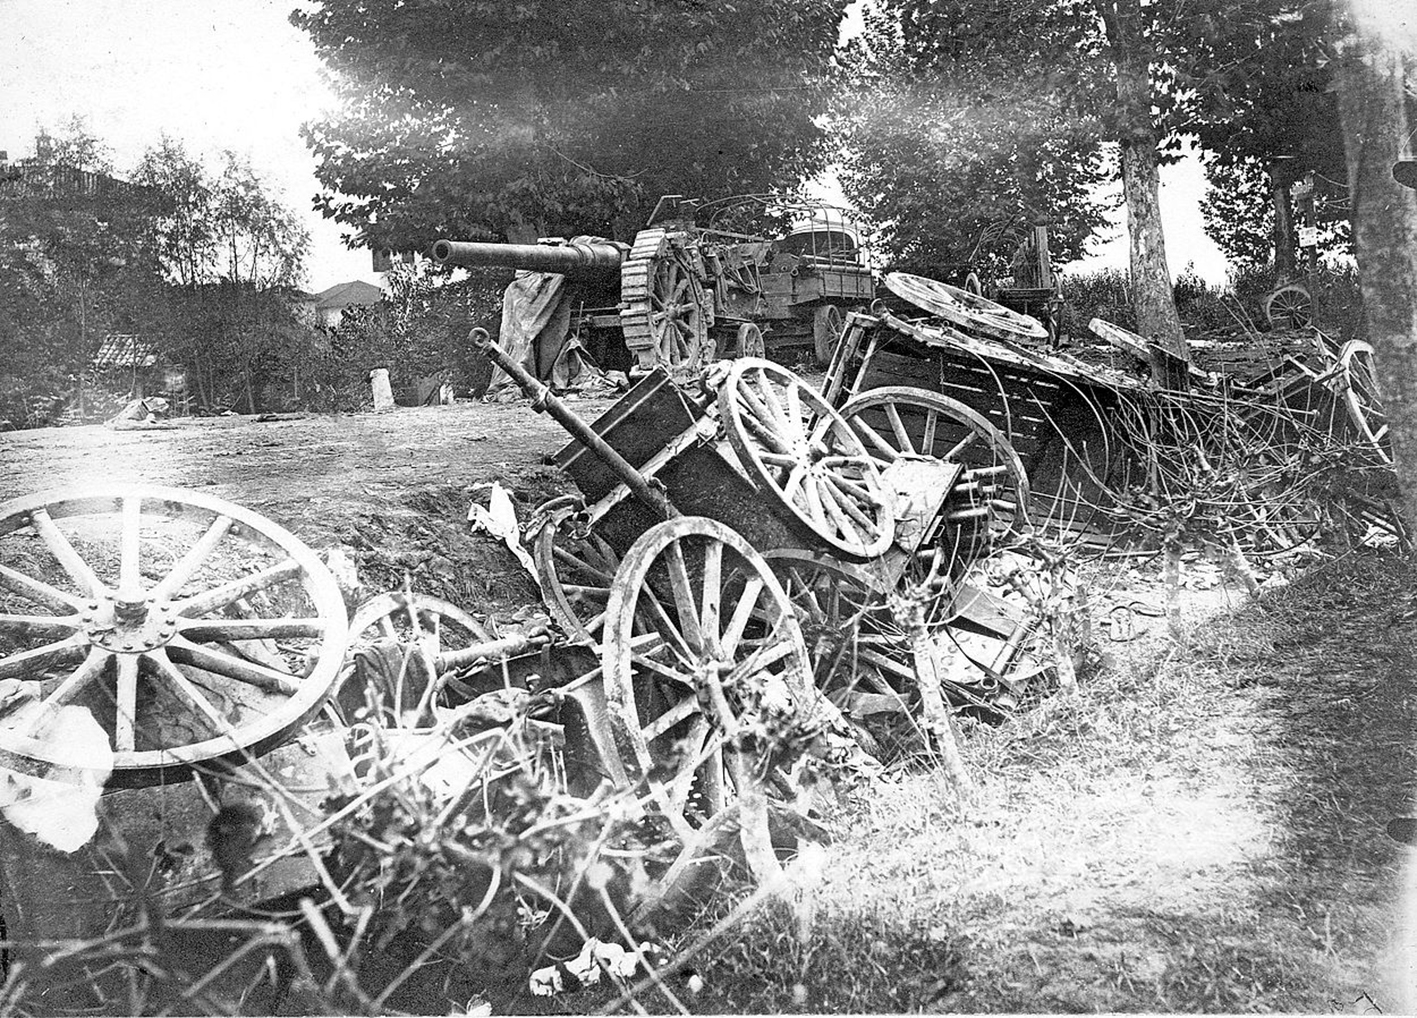 Click image for larger version.  Name:2.3.2. 15 Caporetto captured Italian heavy cannon.jpg Views:1 Size:1.07 MB ID:3655675